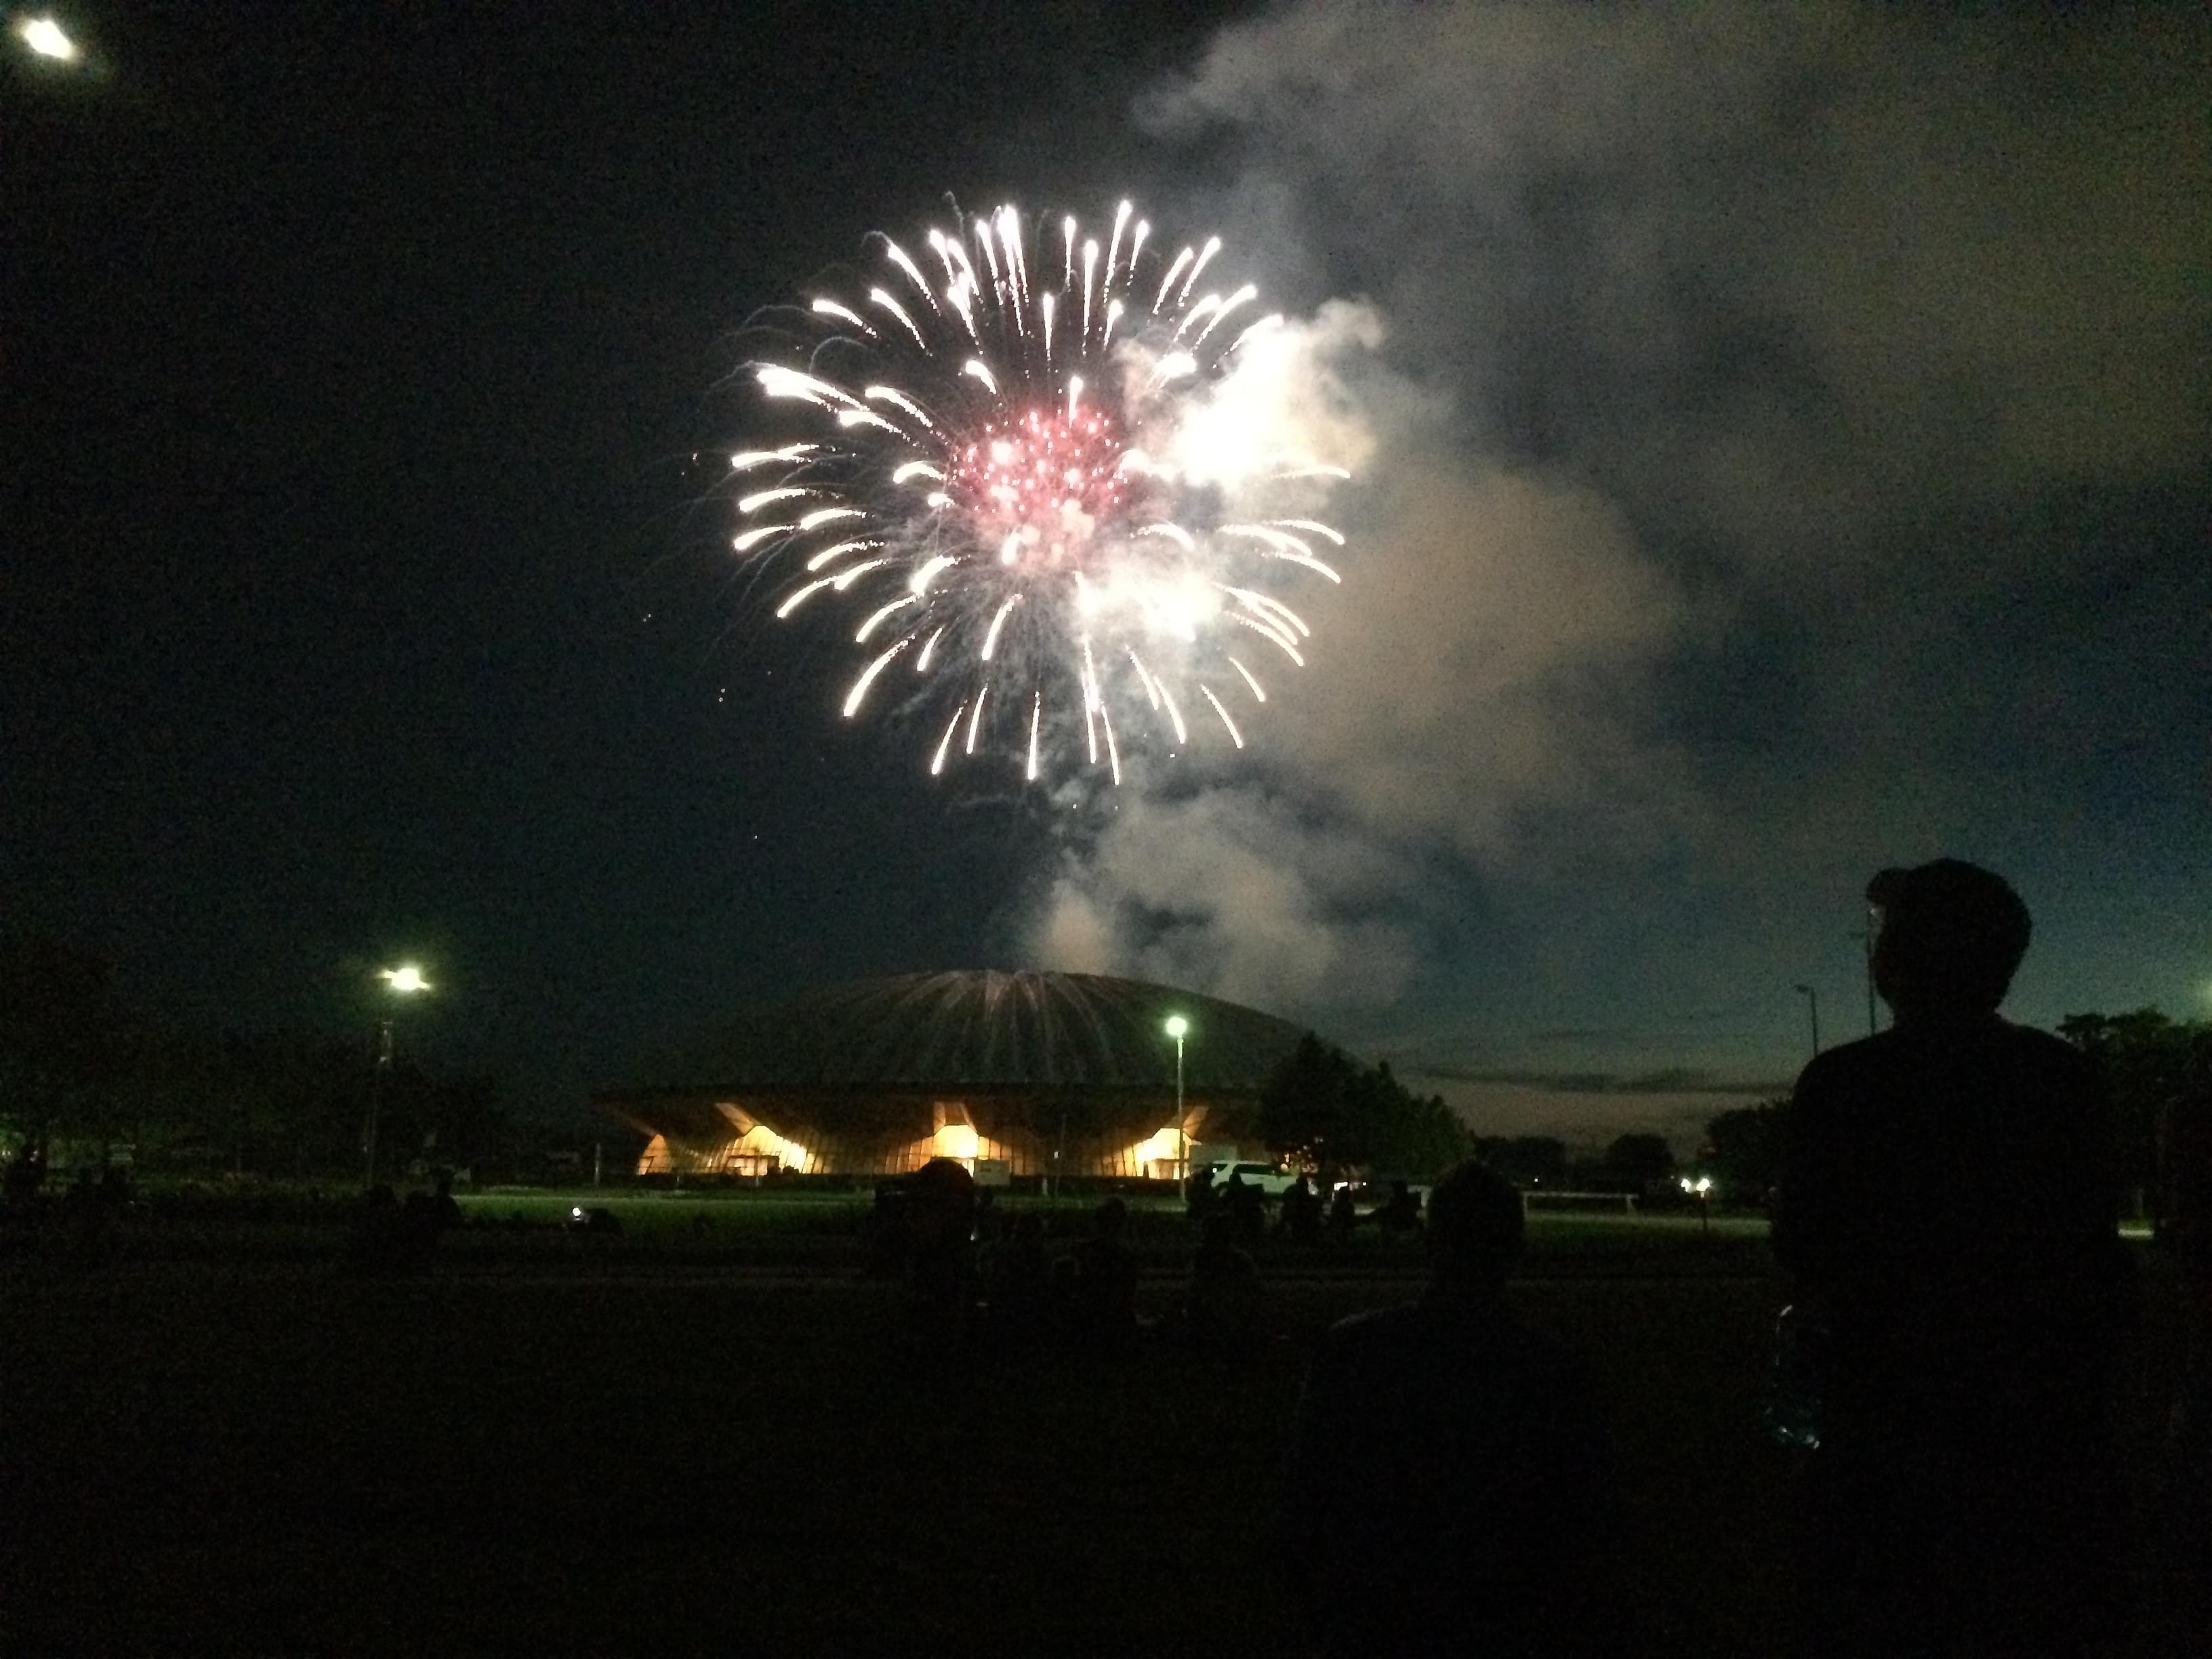 Fire works from July Fourth celebrations in 2014